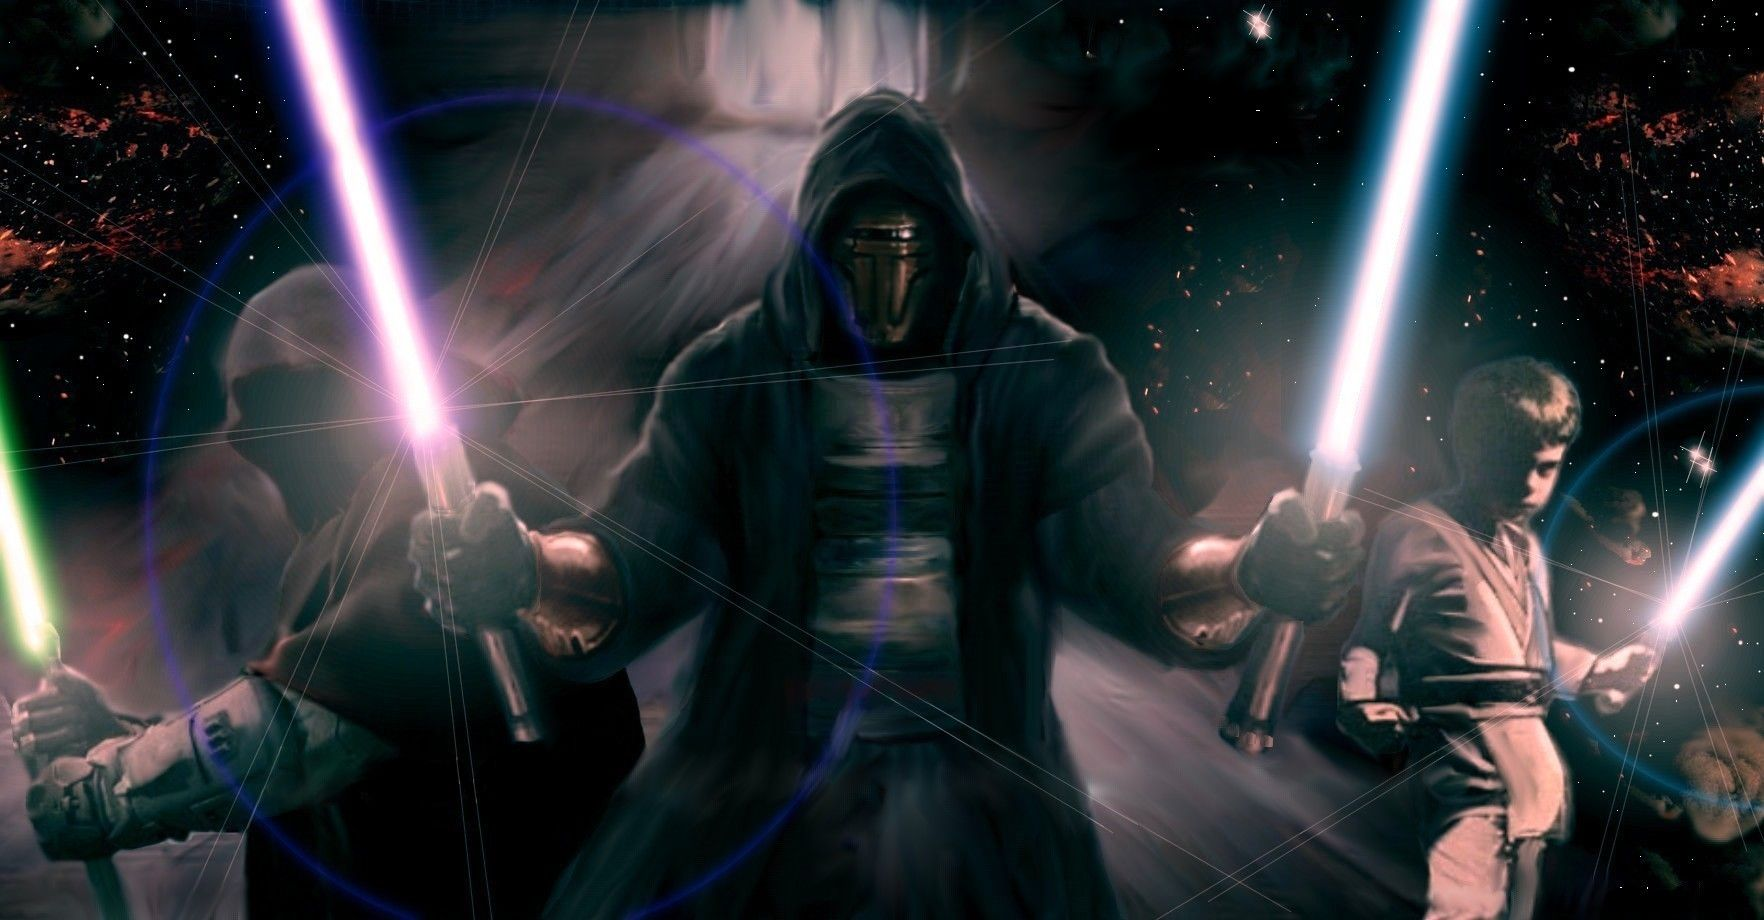 Darth Revan Wallpaper Google Search Star Wars Darth